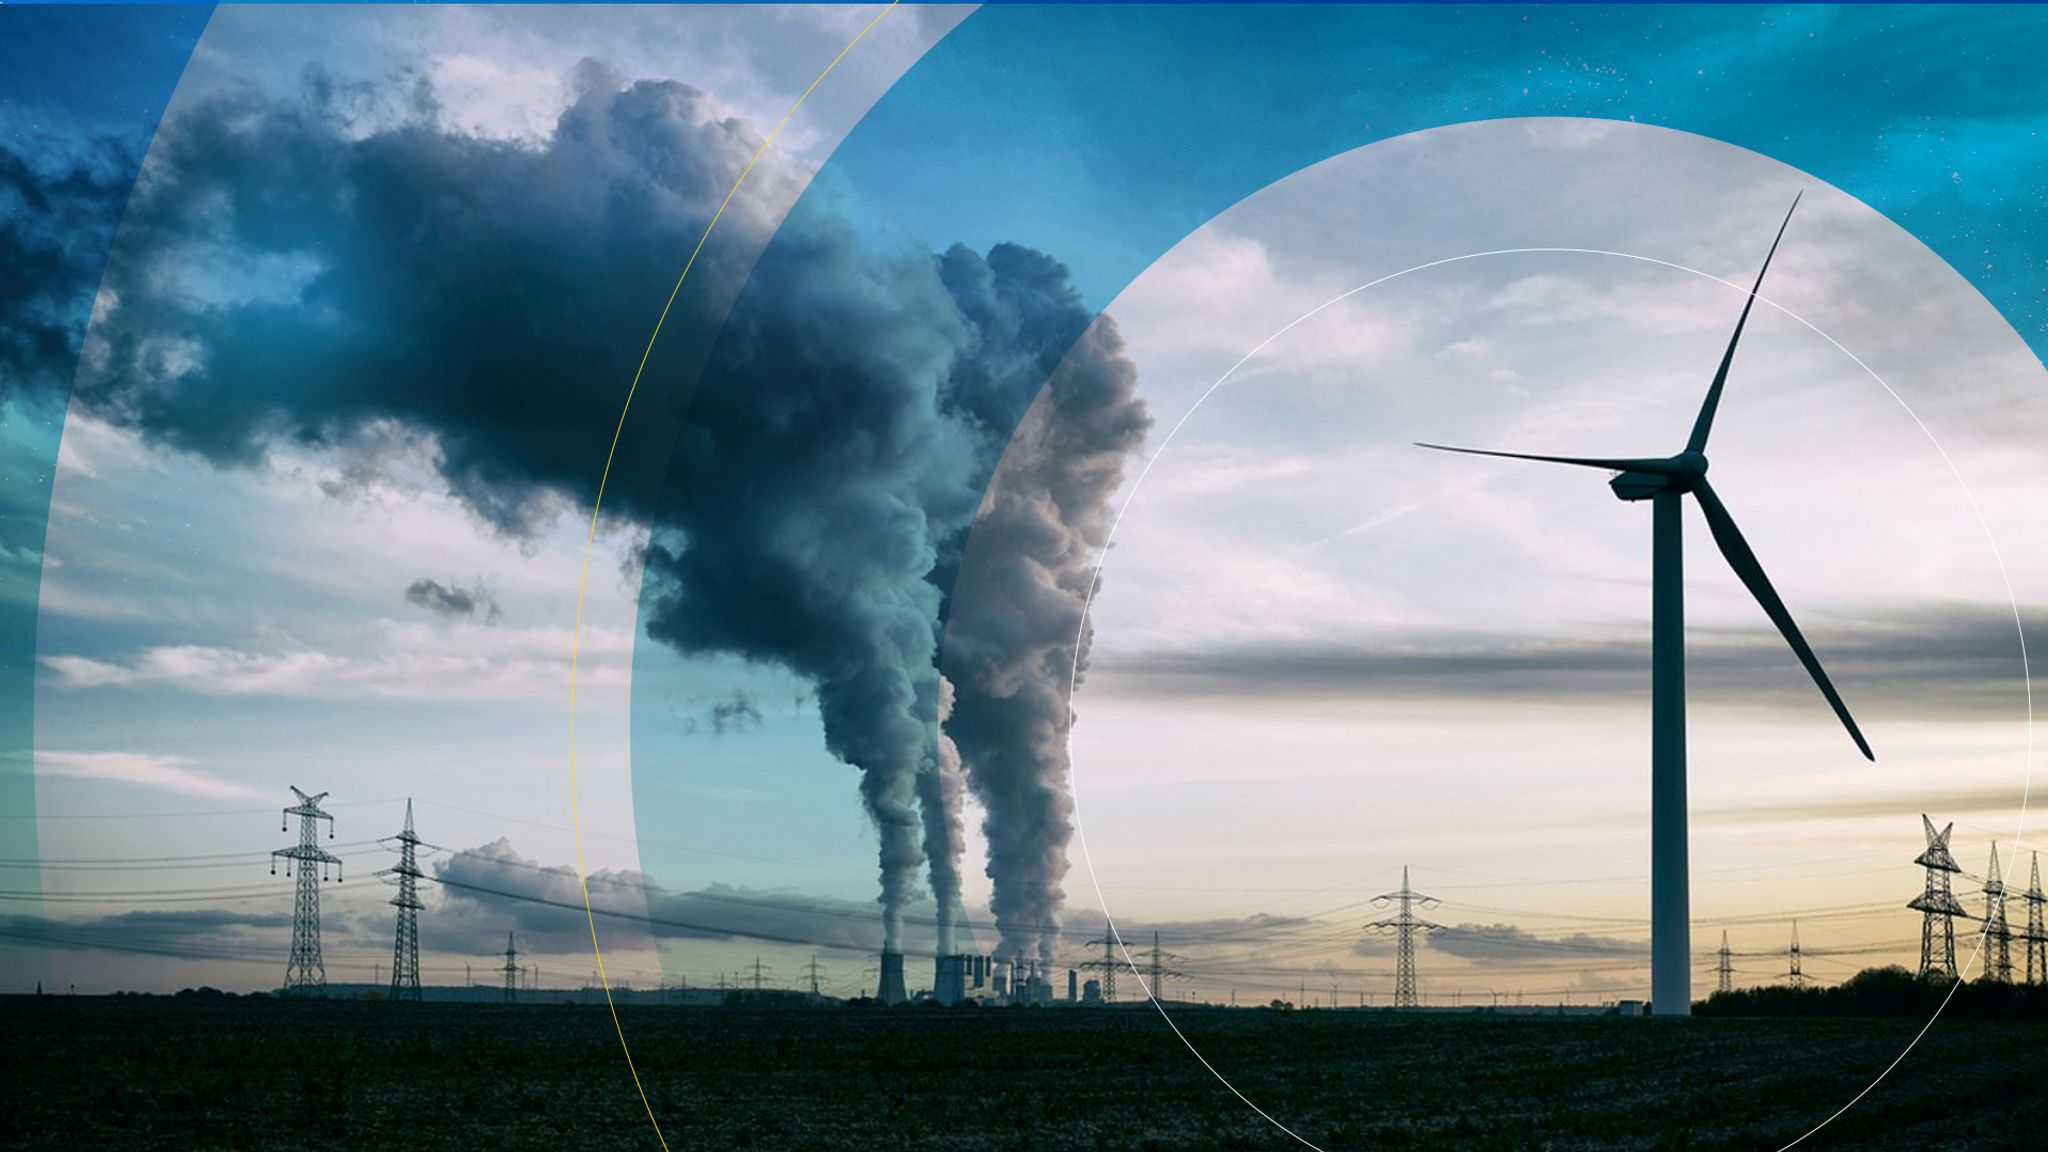 Climate change: UK to set into law world's most ambitious target for reducing emissions